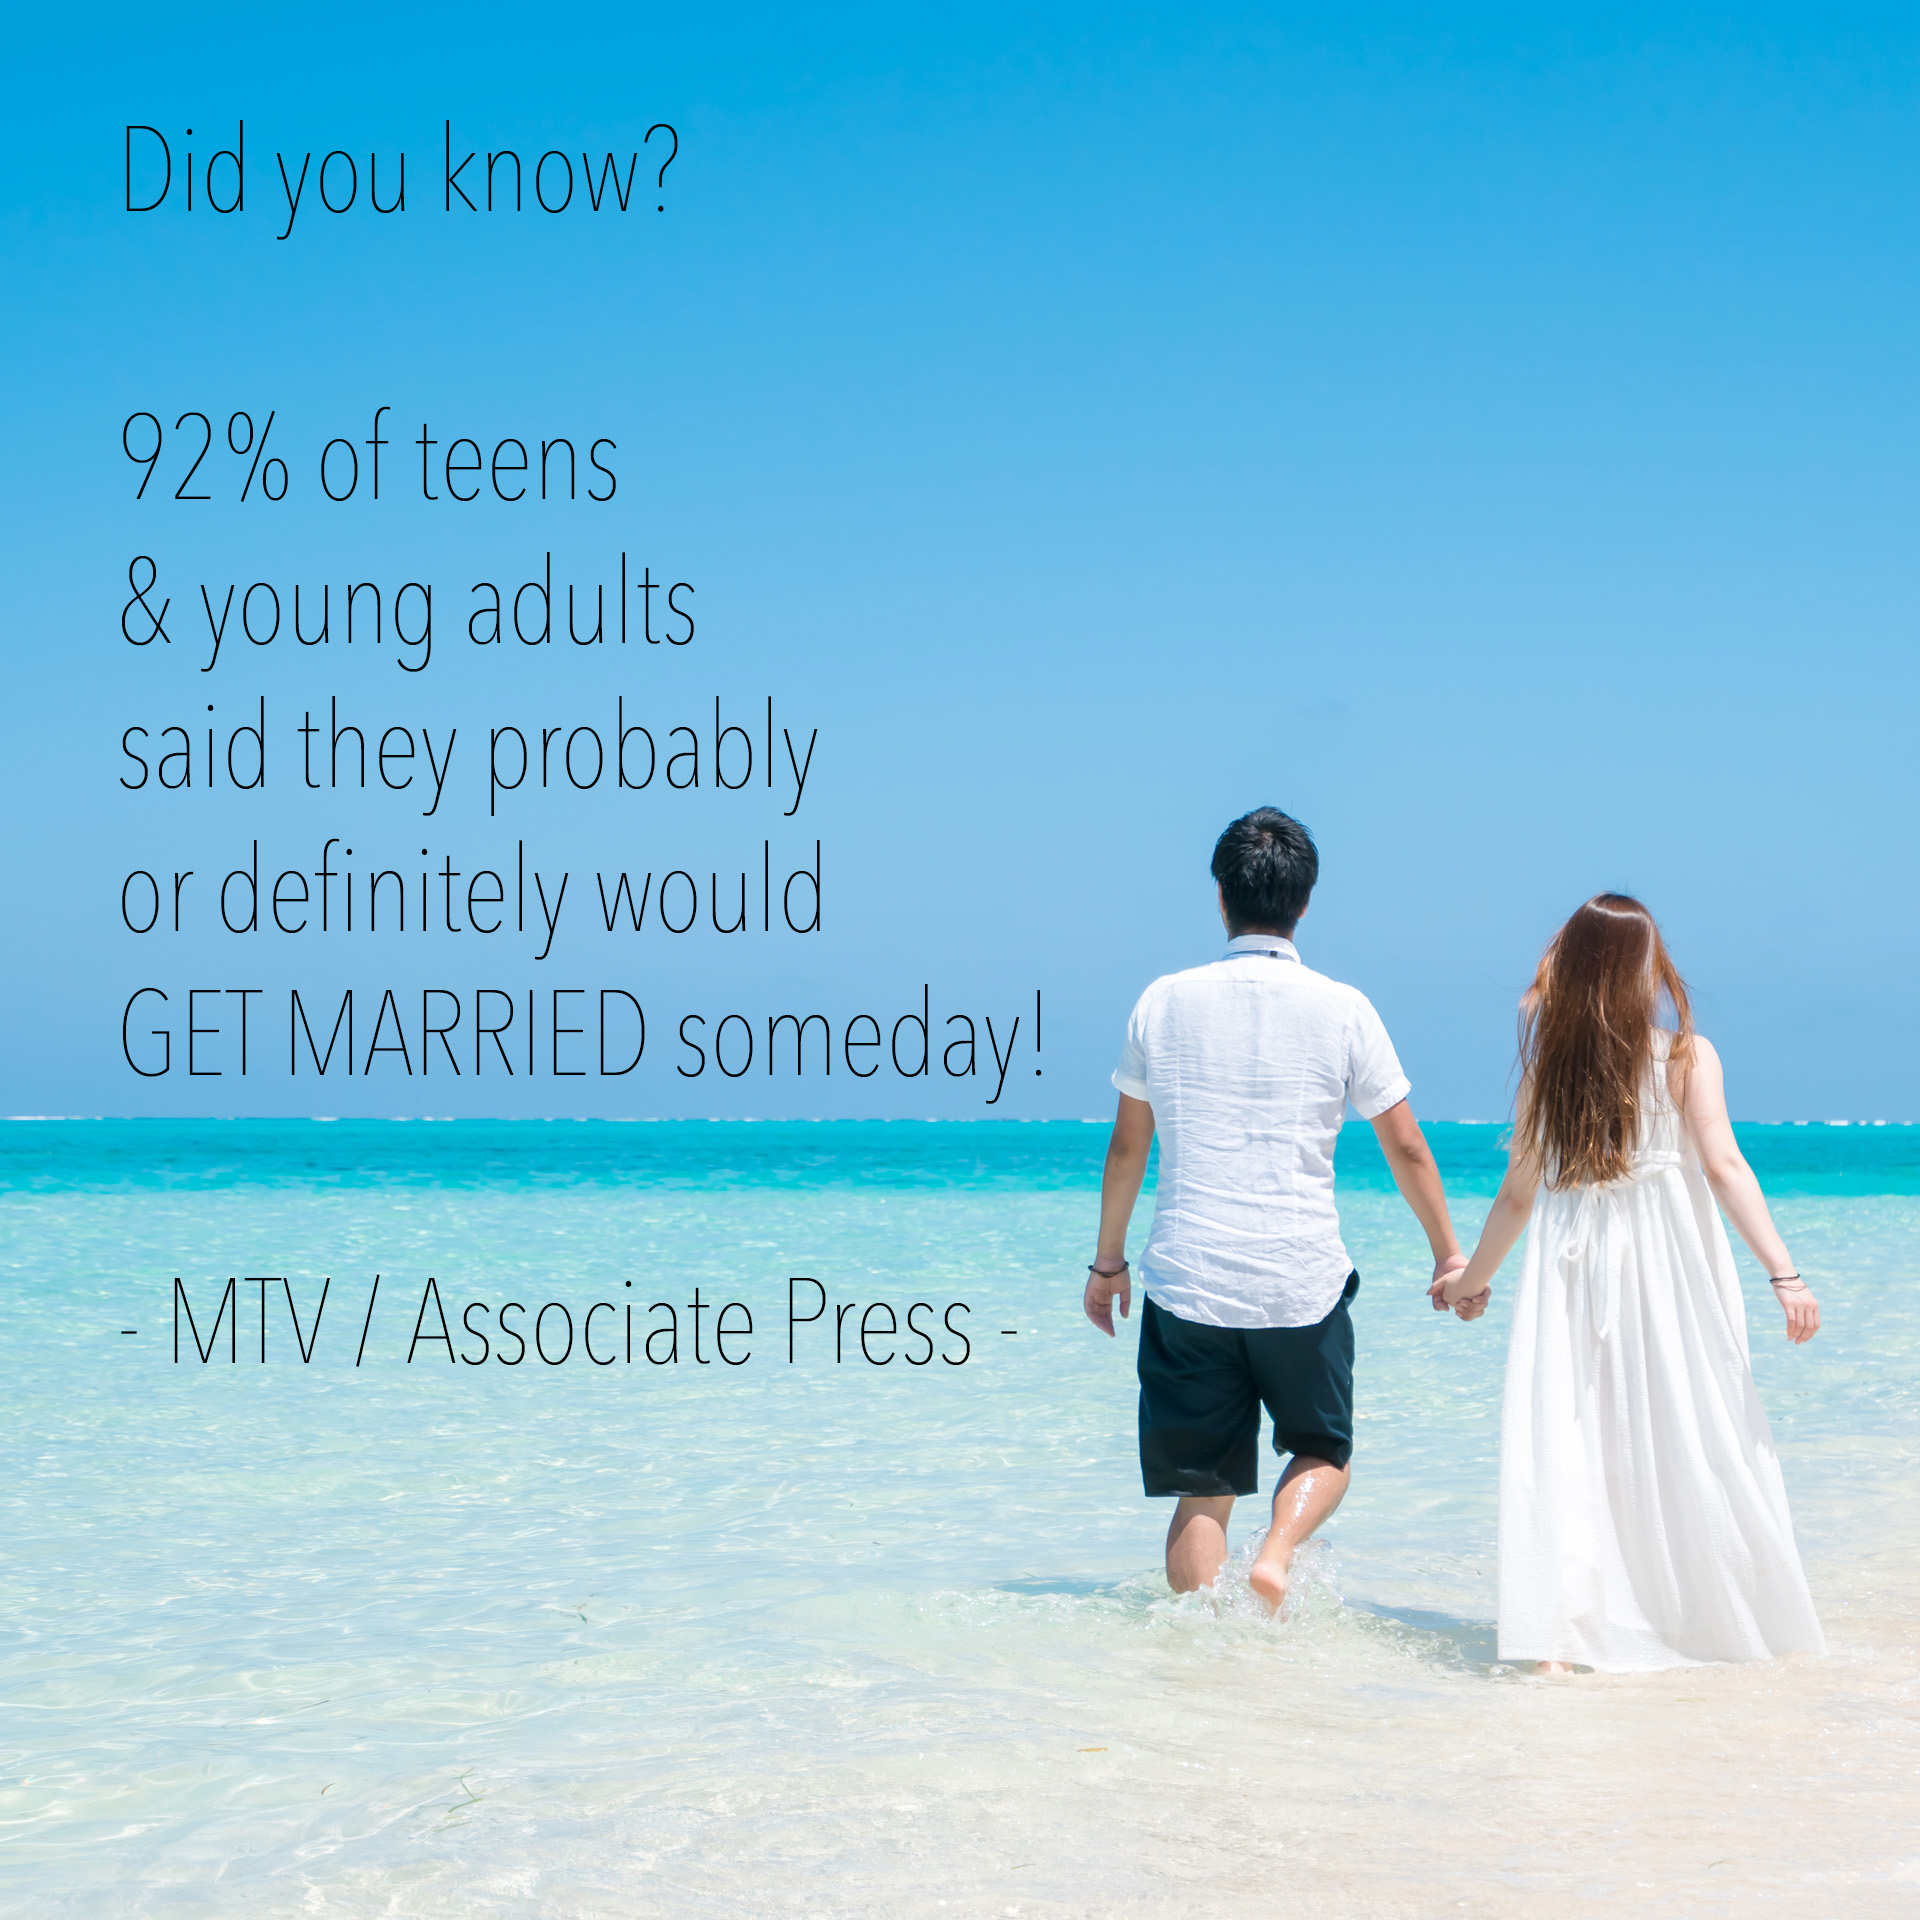 Did you know? 92% of teens & young adults said they probably or definitely would GET MARRIED someday! - MTV / Associate Press